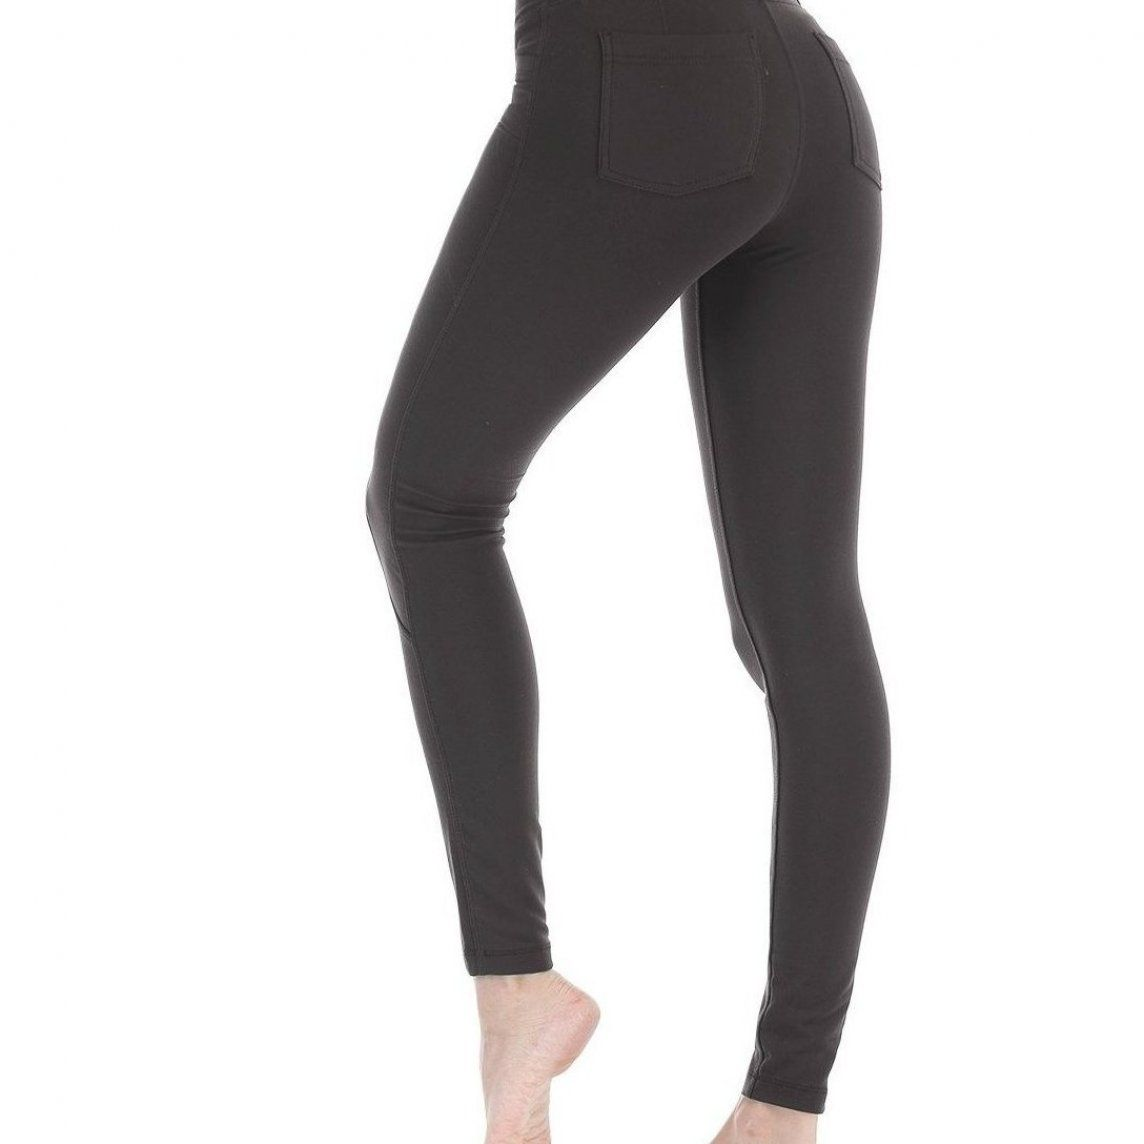 Yoga Legging Sport Workout Running and Dancing Pants Yoga Pants Outfits - CV18DH6YLIX - Sports   Fit...